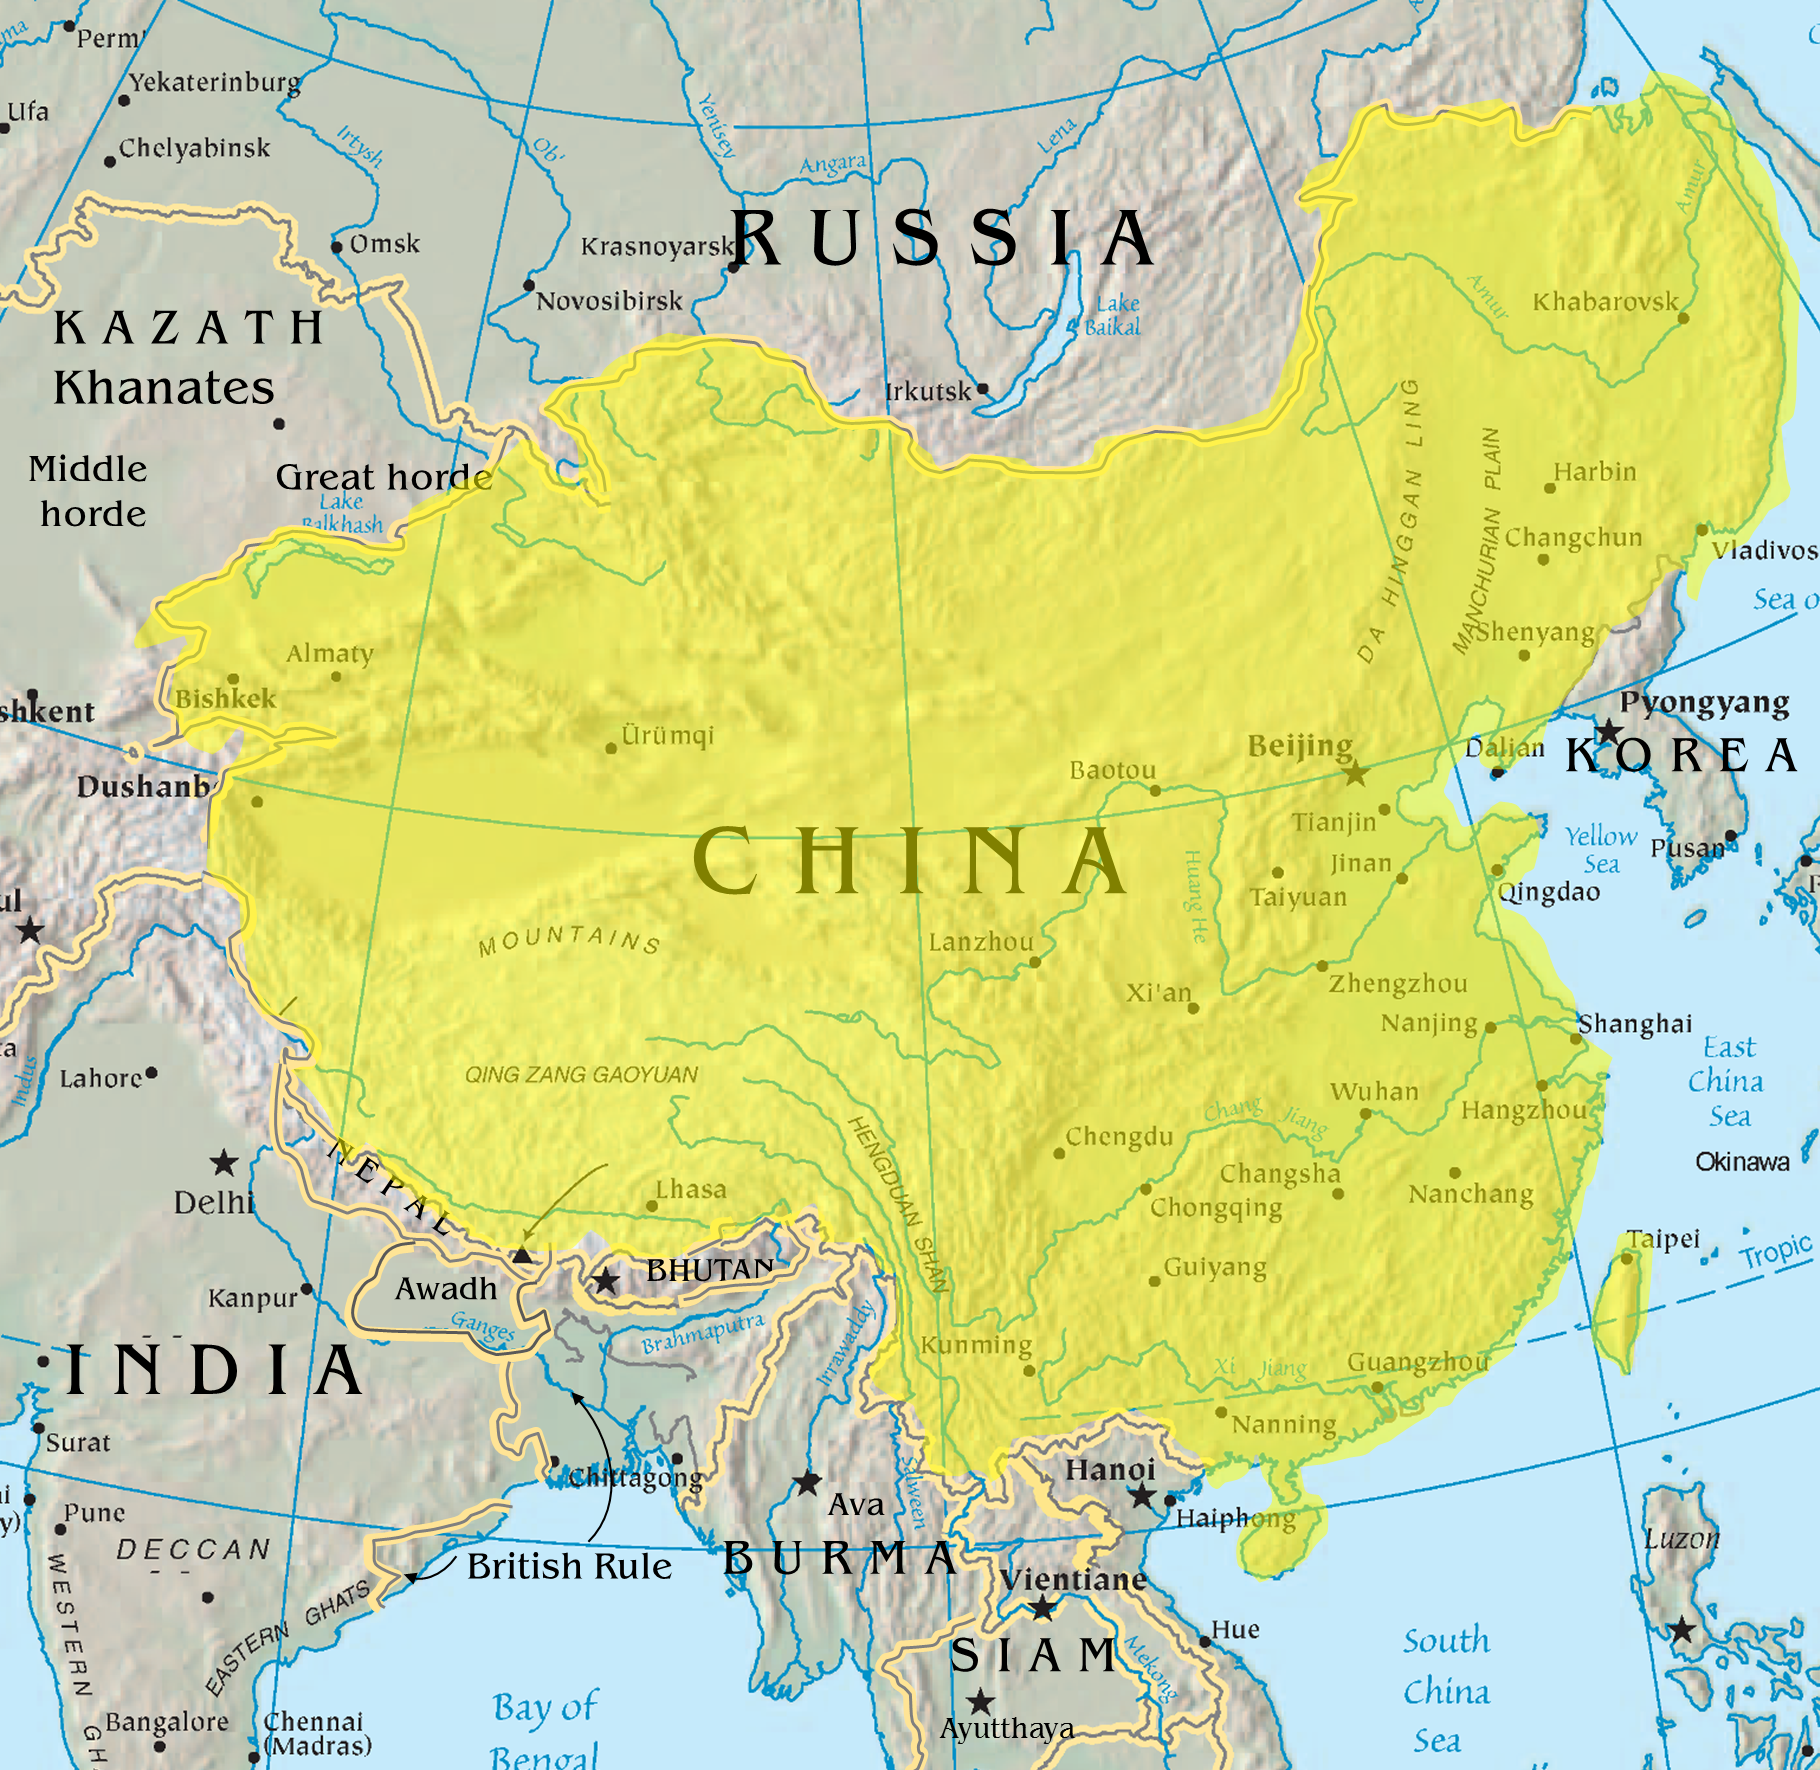 Map Of The Qing Dynasty China Including Some Parts That Are Now - Map teardrop from russia to us